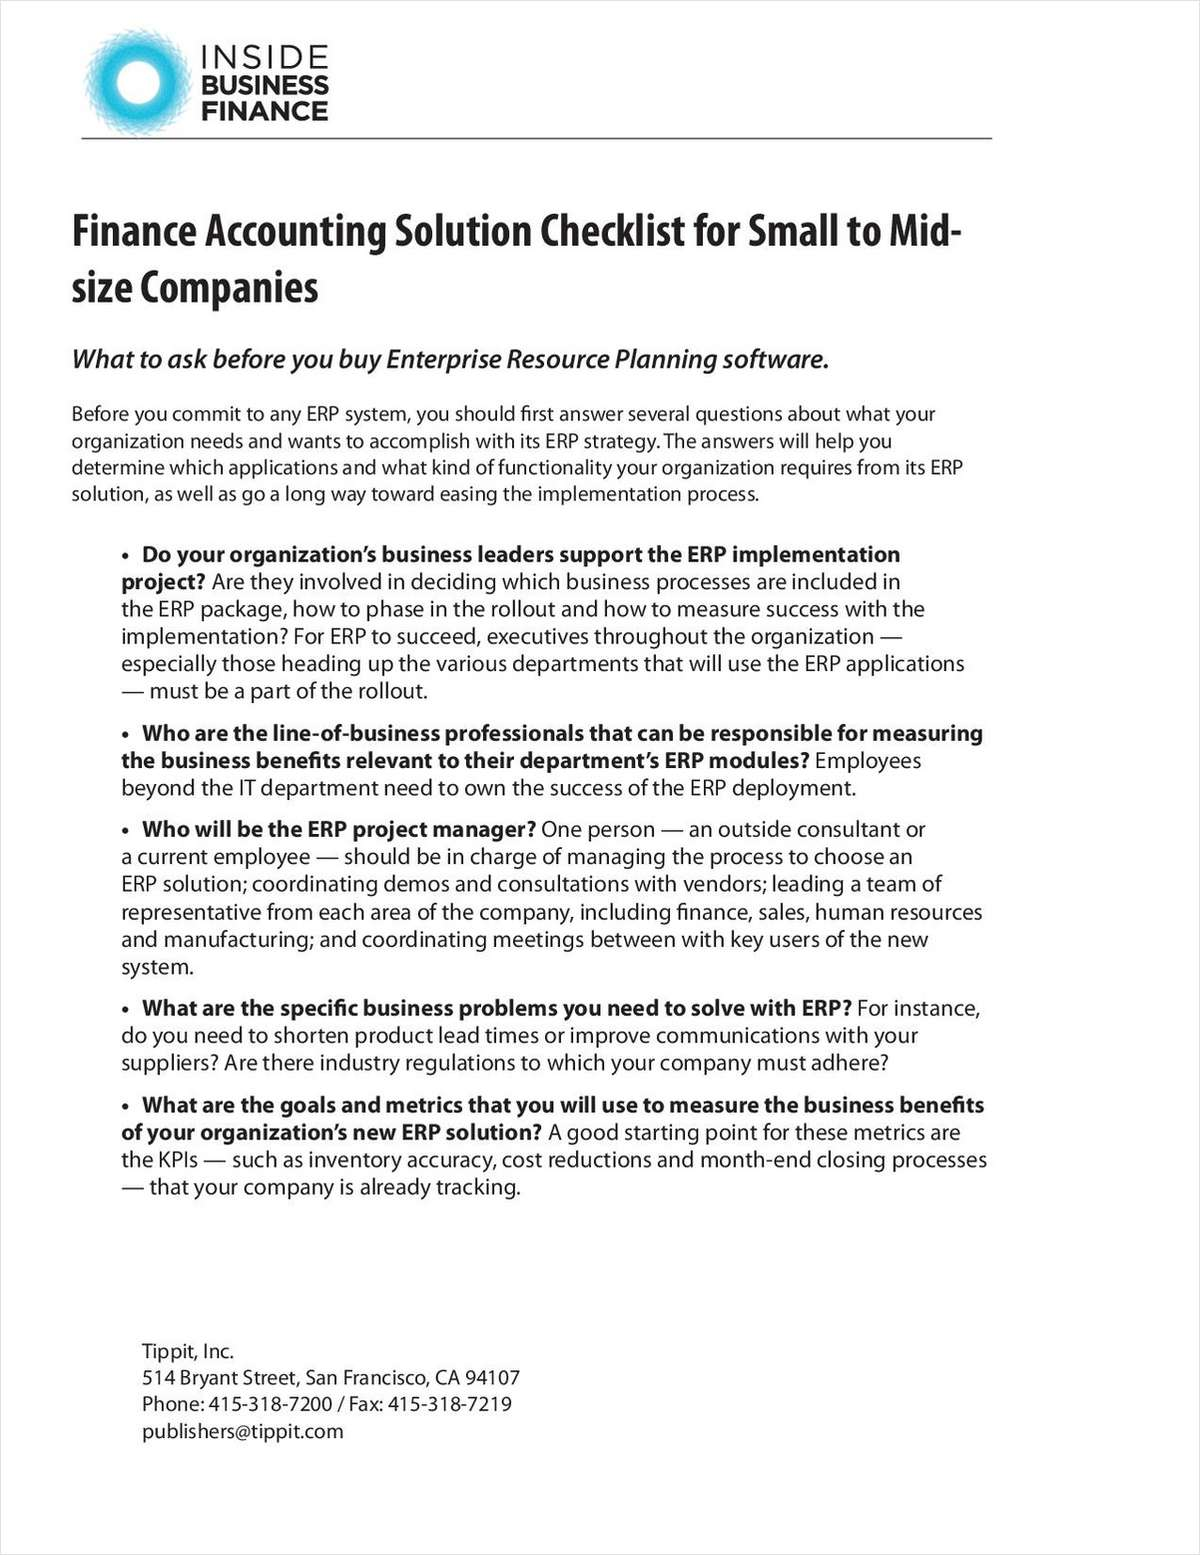 Finance Accounting Solution Checklist for Small to Mid-size Companies